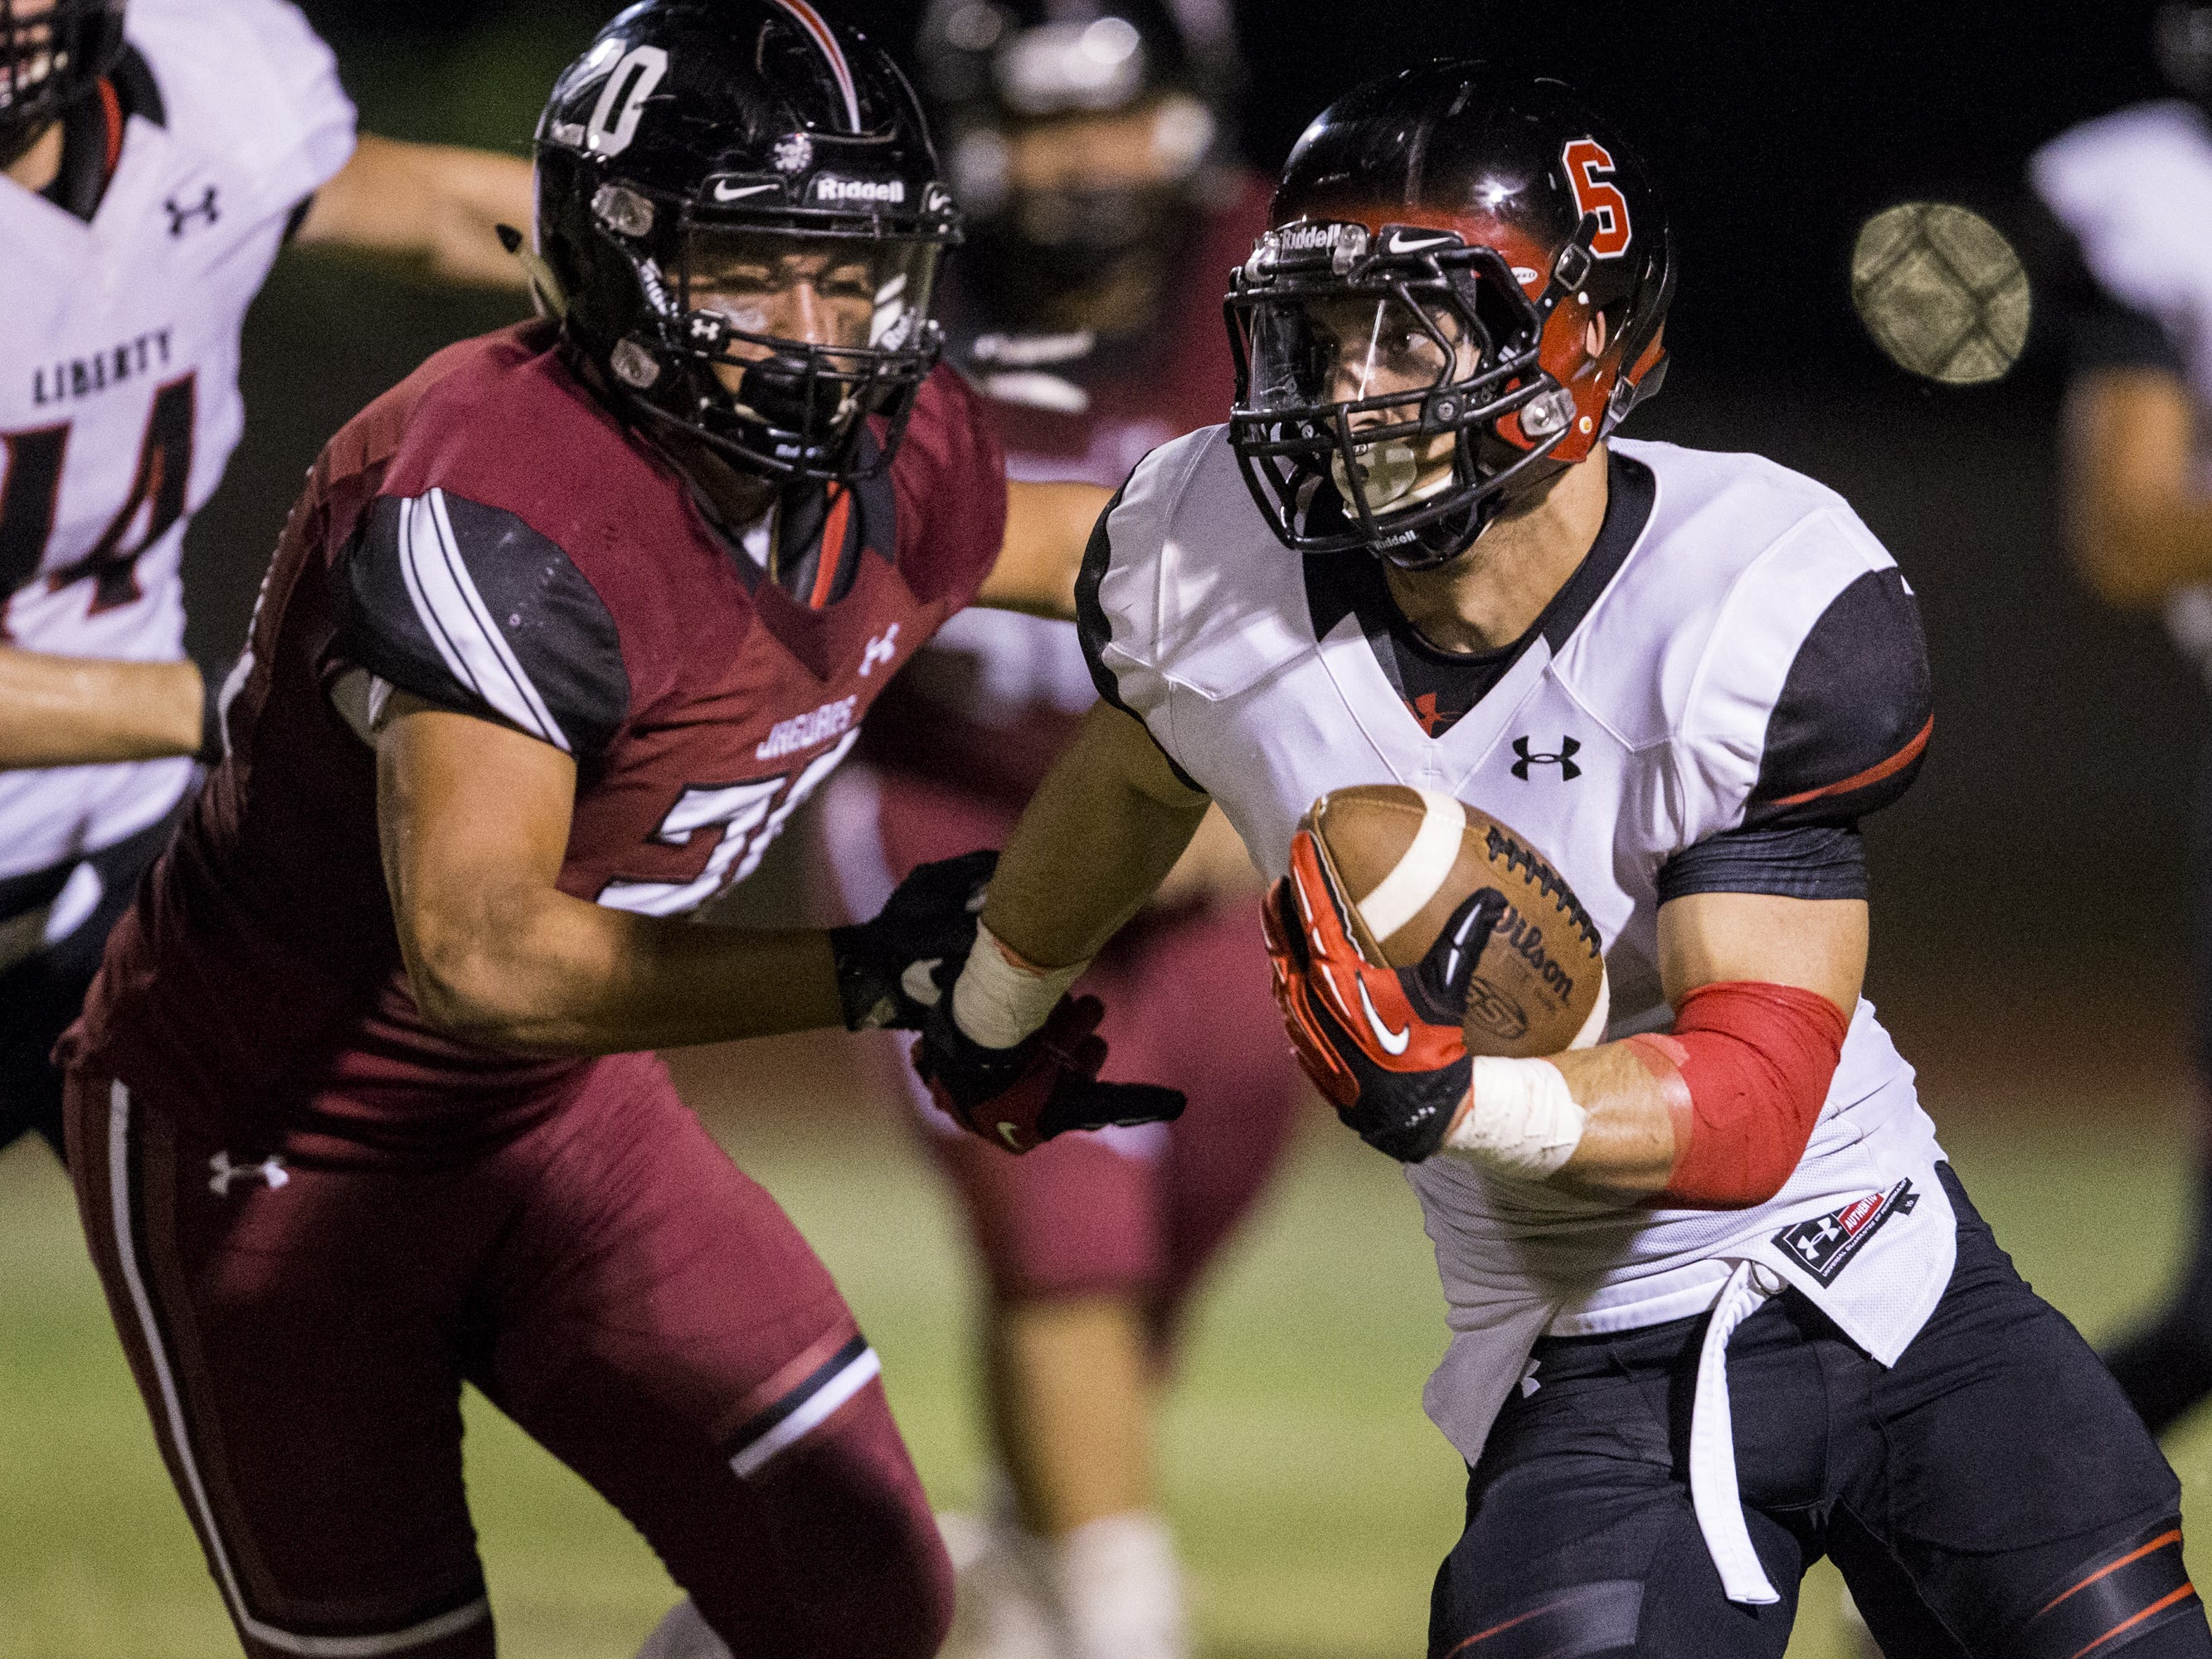 Liberty's Jett Kinsch rushes against Desert Ridge in the 2nd quarter on Friday, Sept. 7, 2018, at Desert Ridge High School in Mesa, Ariz.  #azhsfb